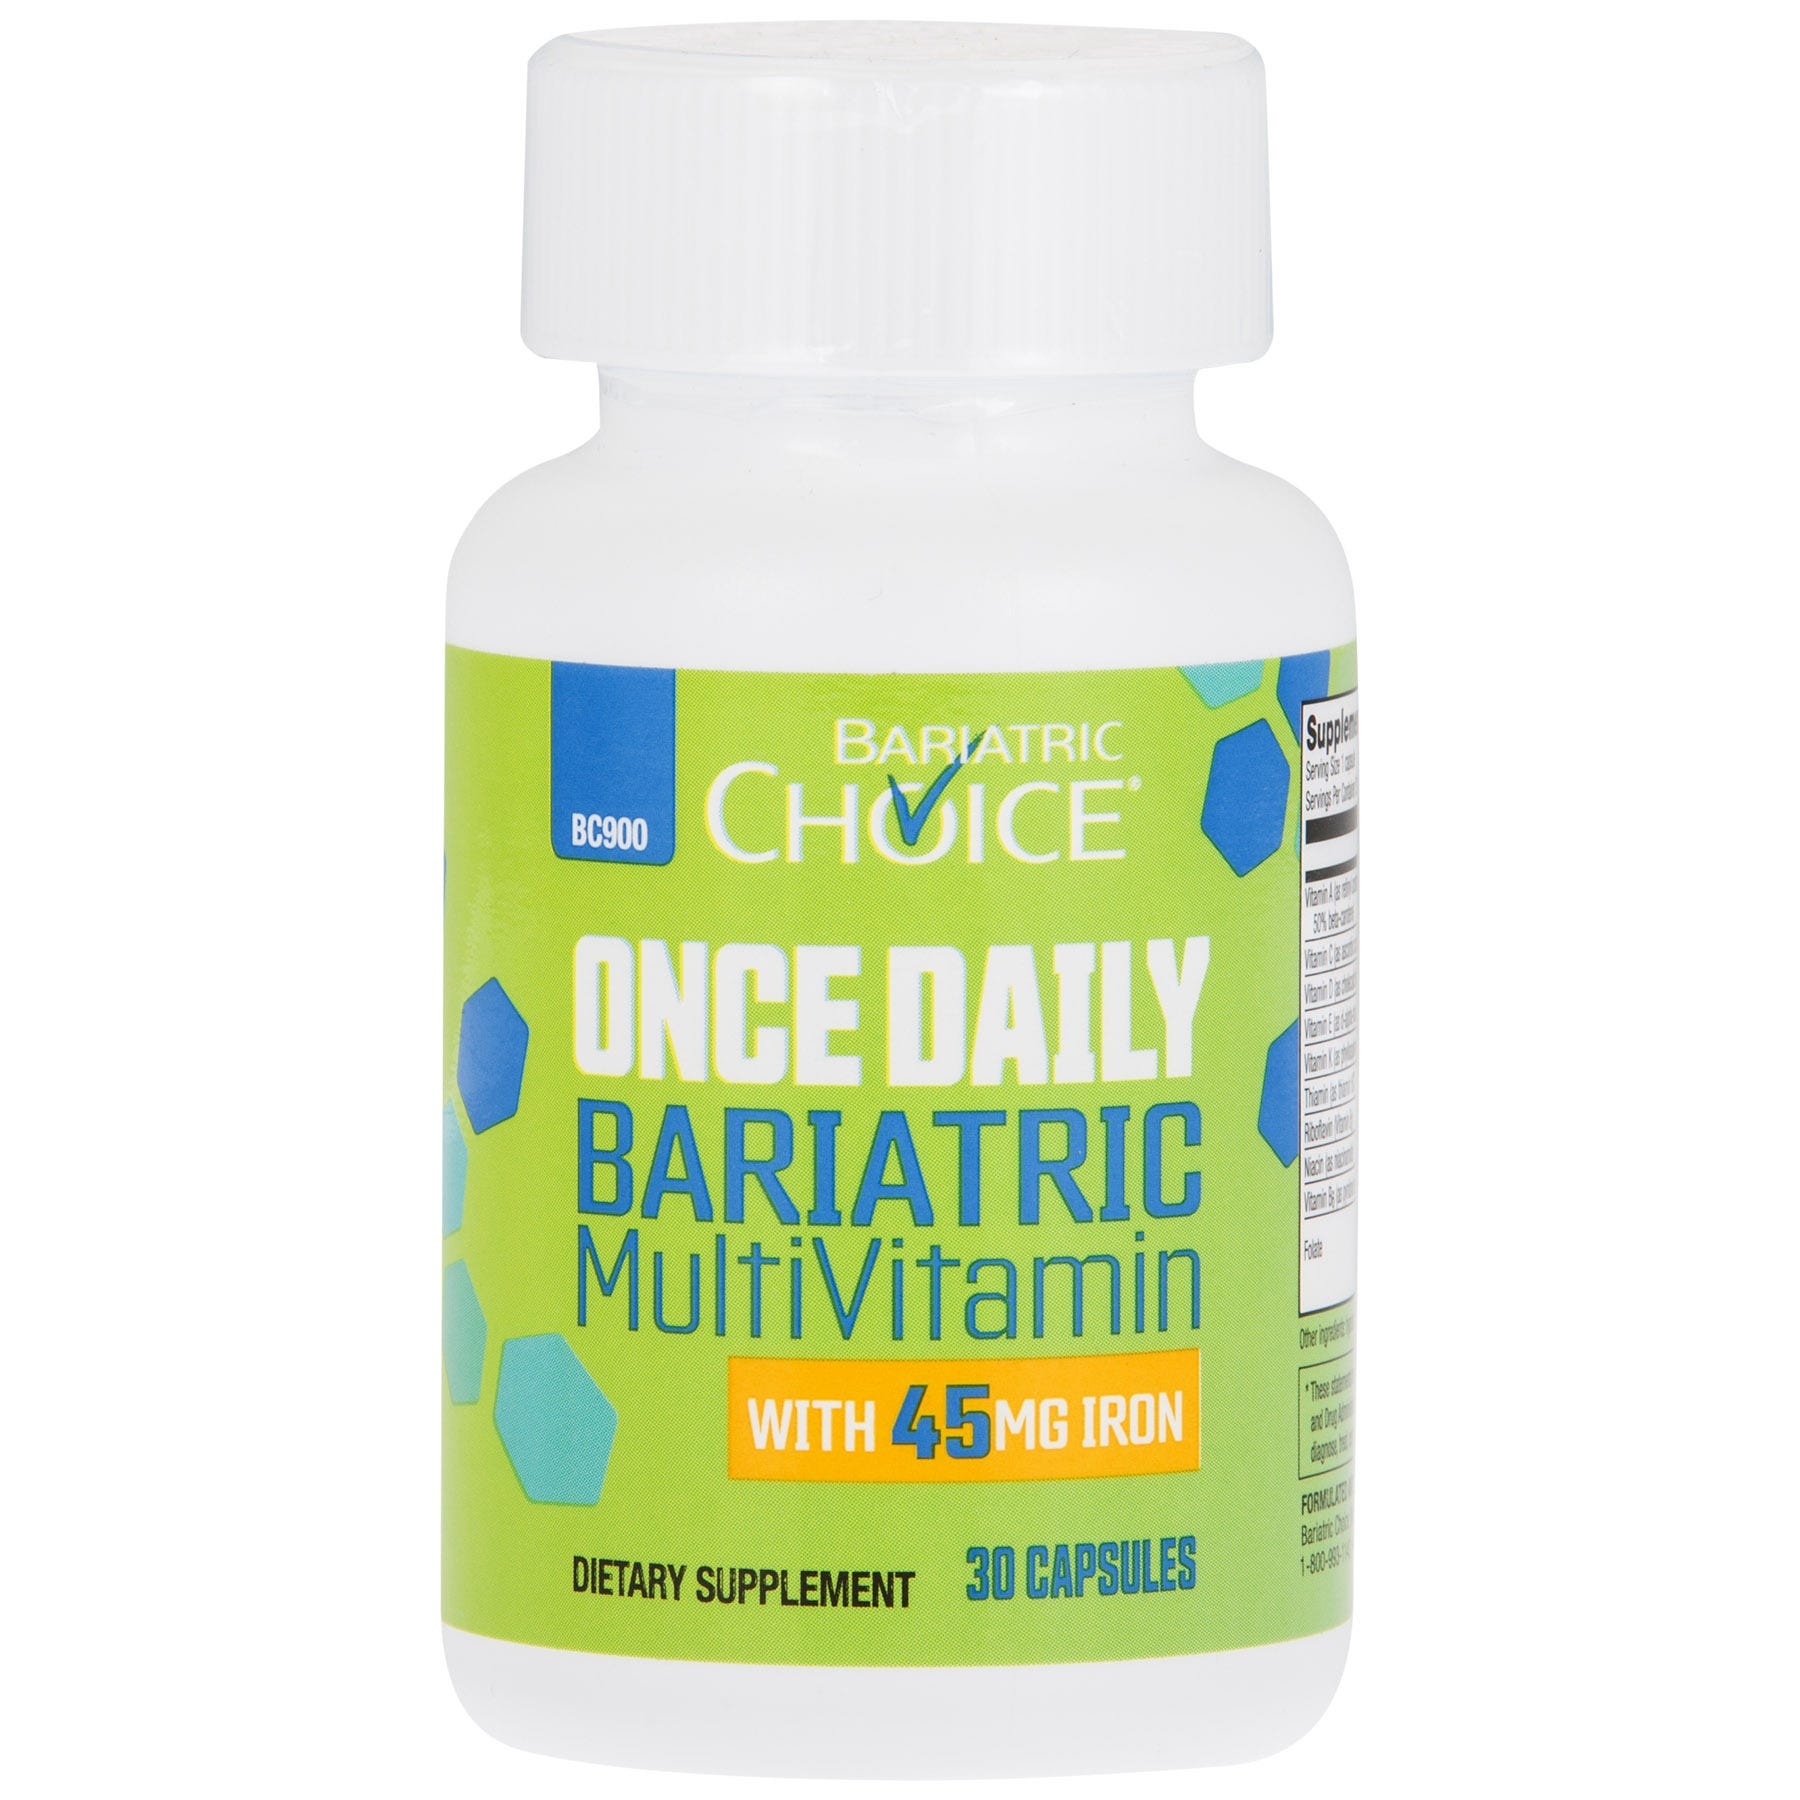 Bariatric Choice ONCE DAILY Bariatric Multivitamin Capsule with 45mg of Iron (30ct)